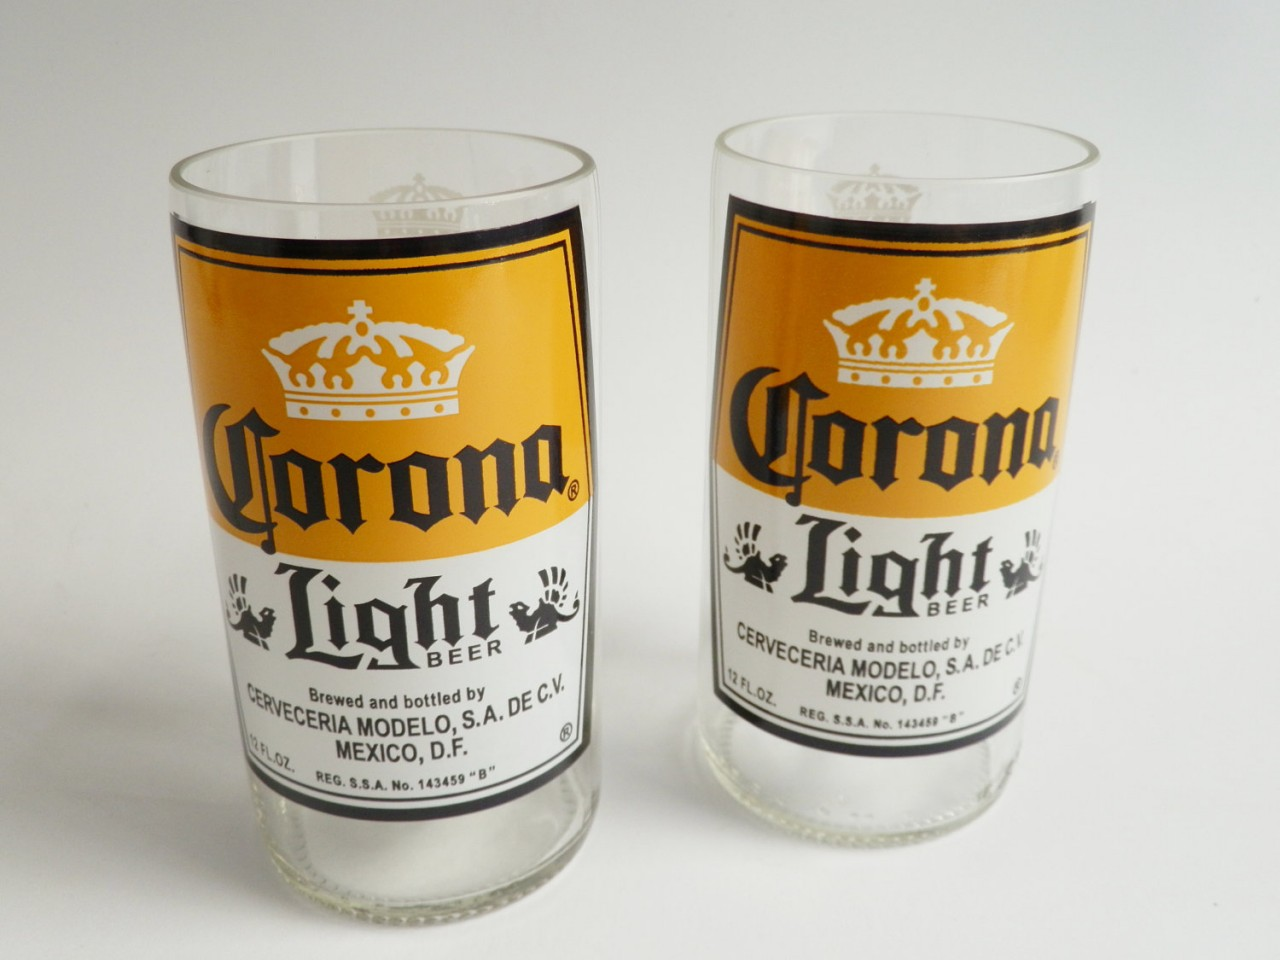 Corona Light Beer Bottle Glass Tumblers